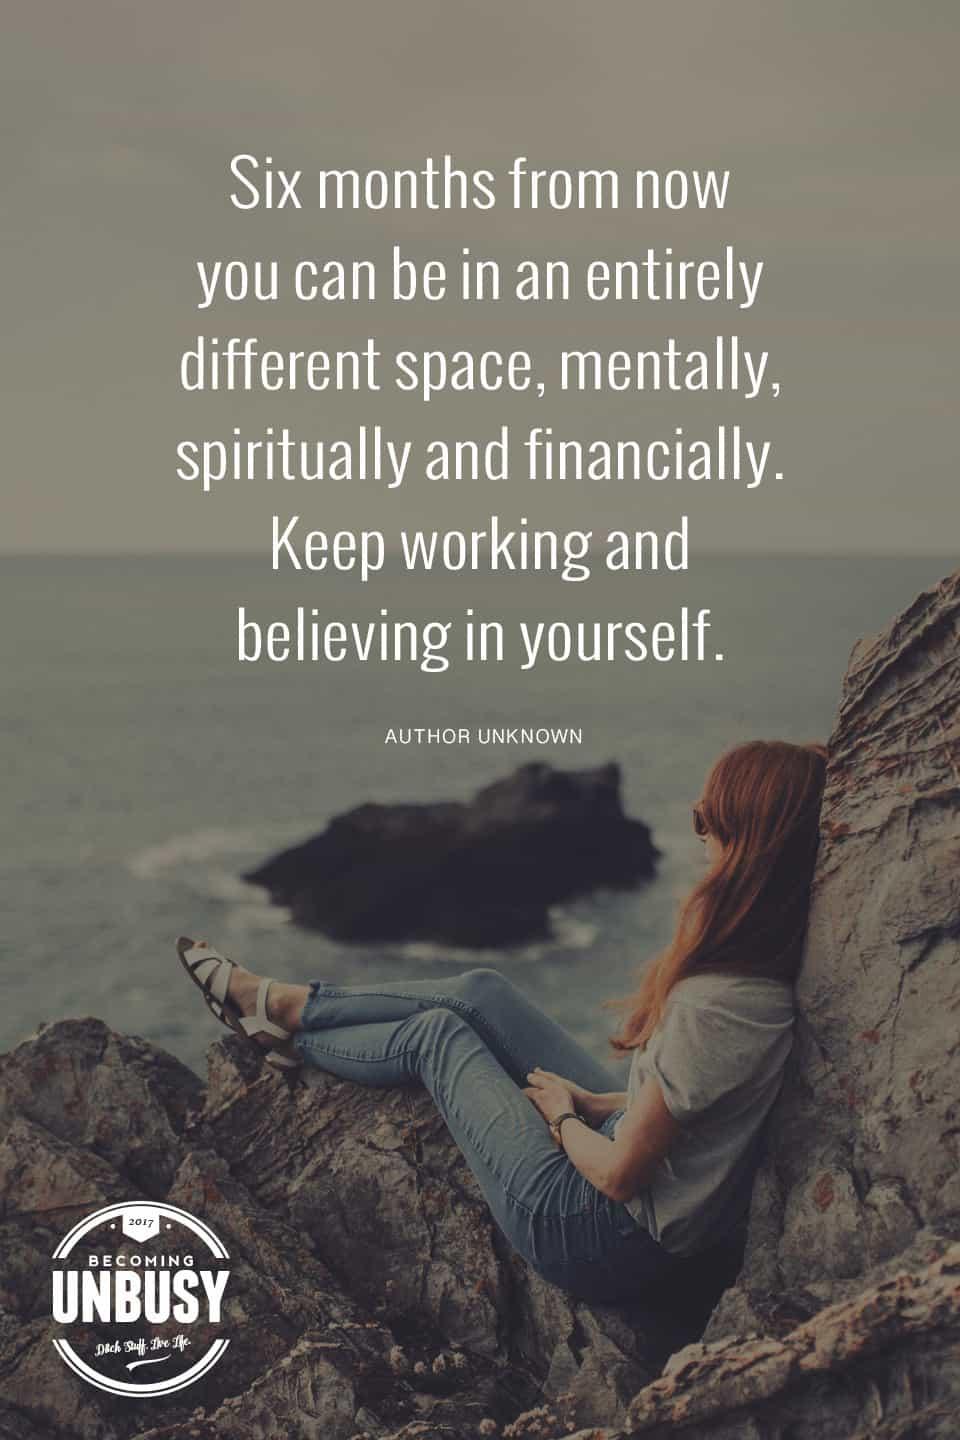 Six months from now you can be in an entirely different space. Keep working and believing in yourself. #becomingunbusy *Great post on embracing simplicity